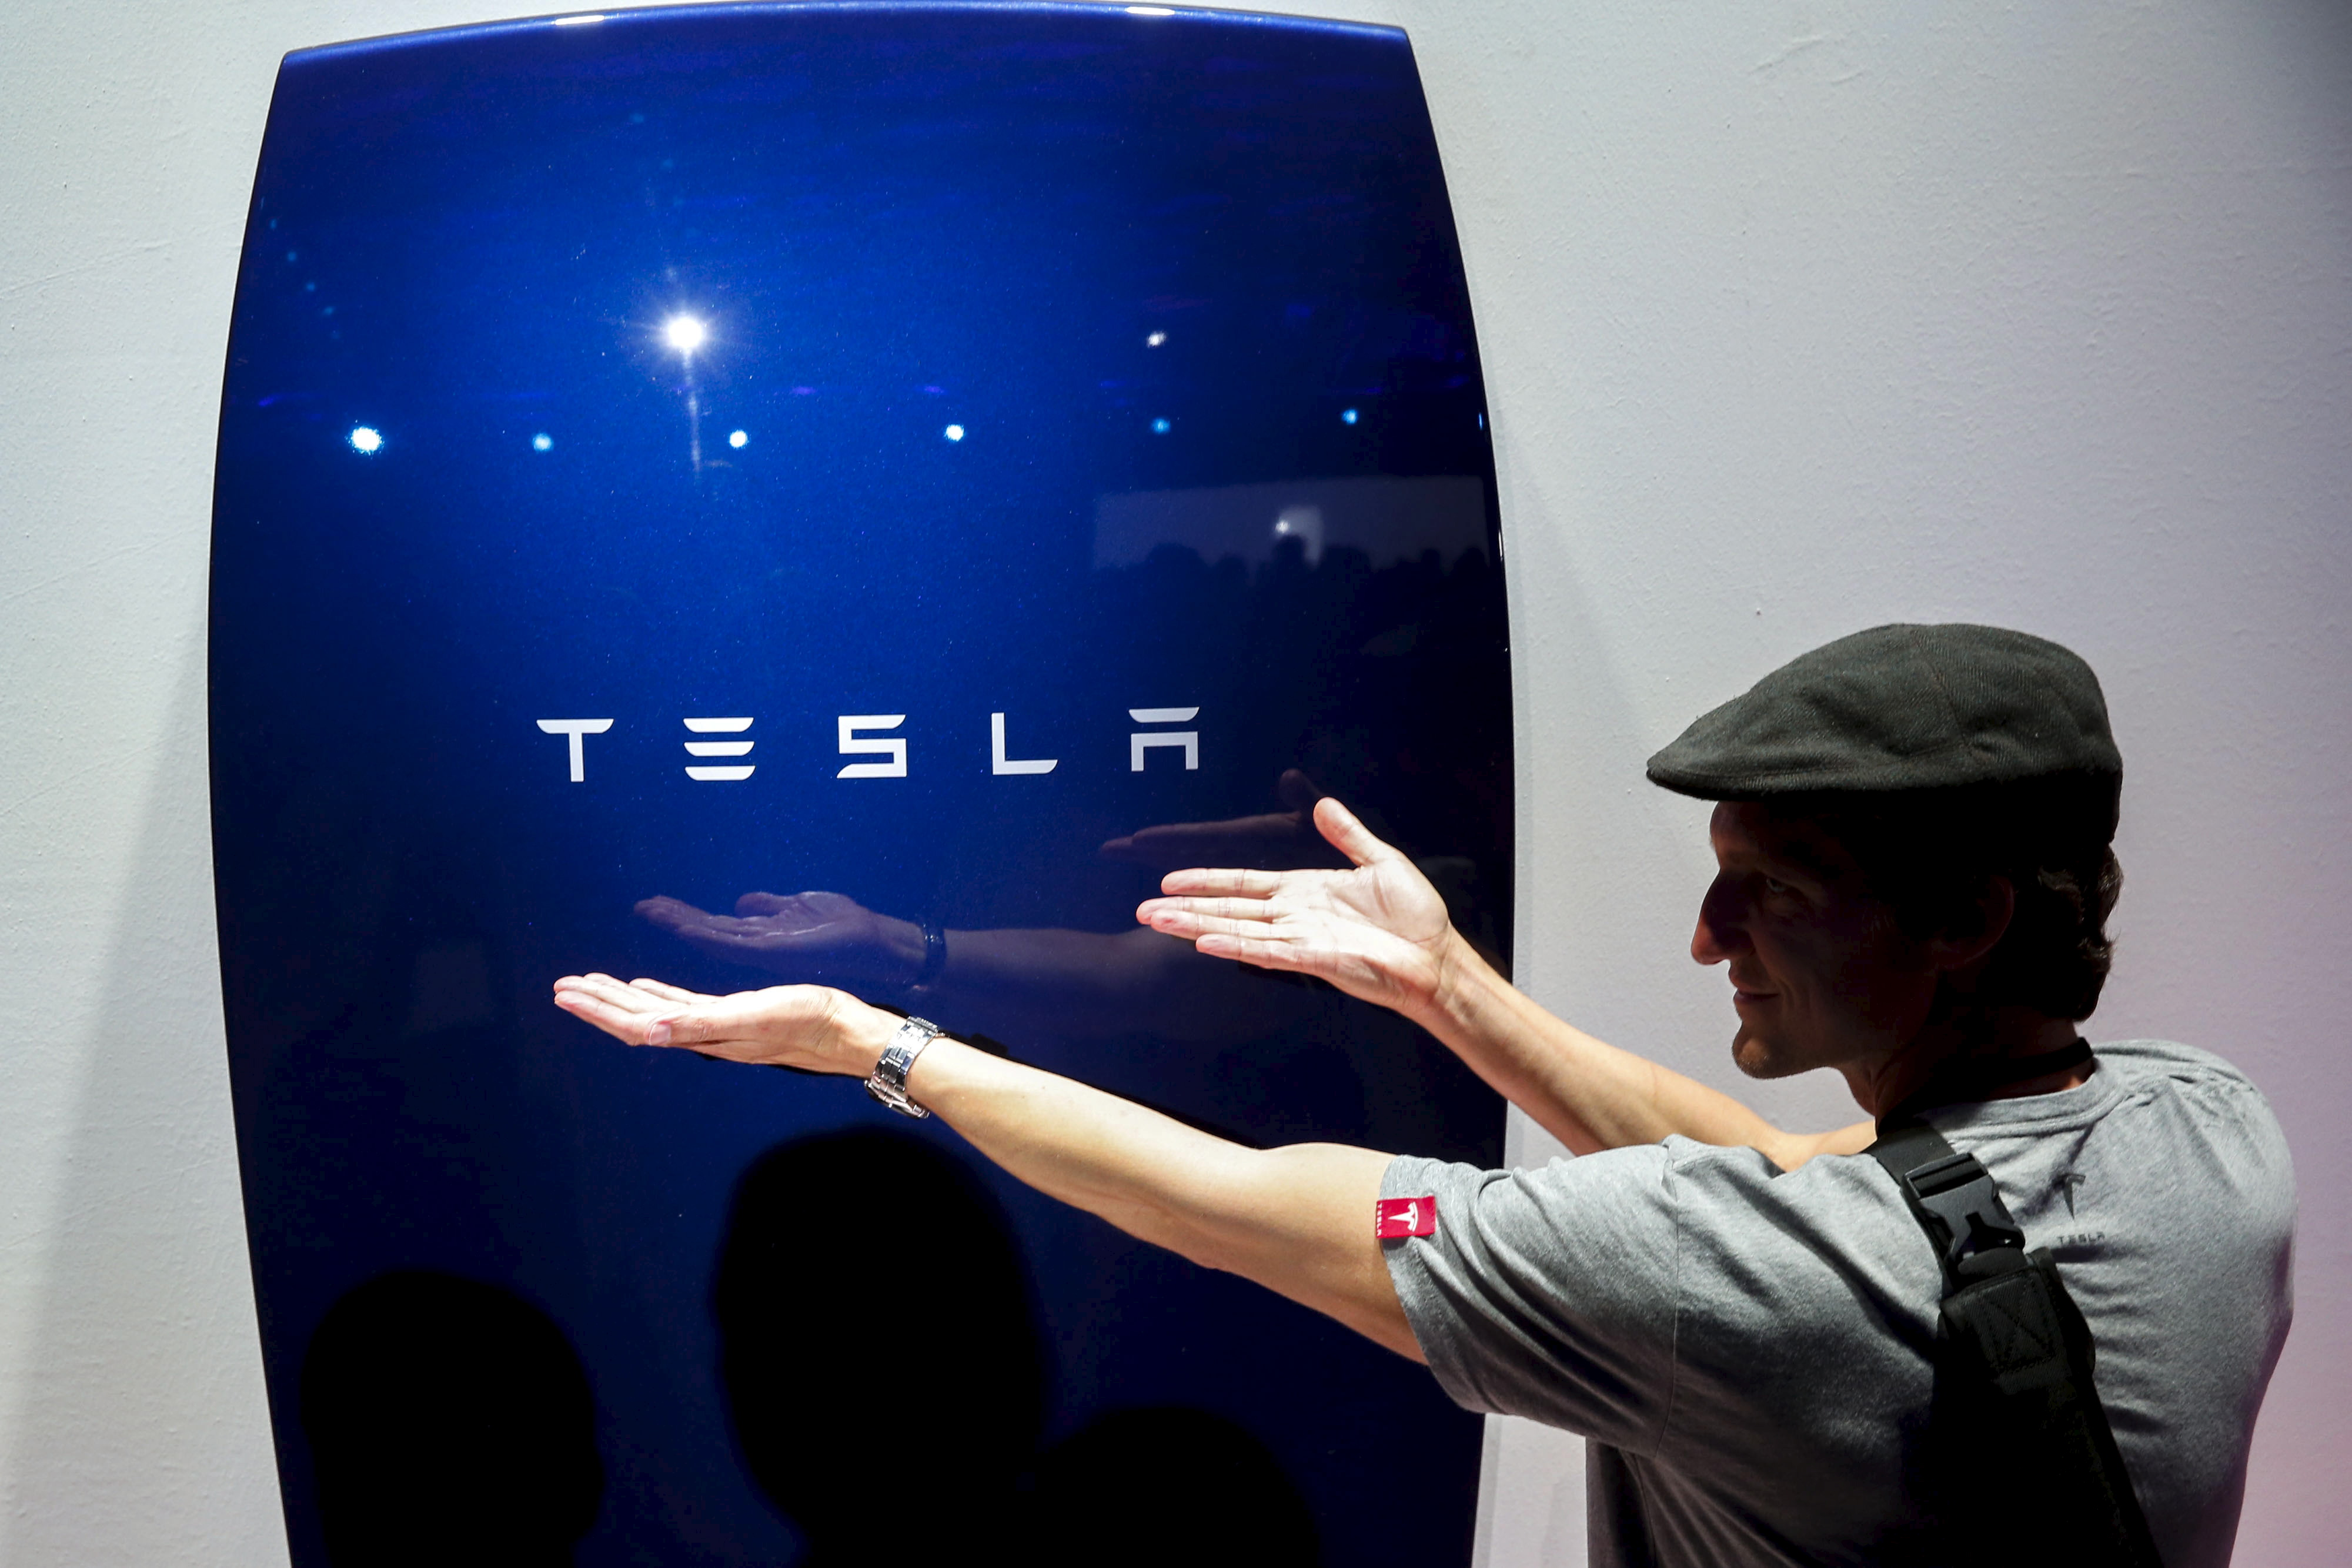 Attendees take pictures of the new Tesla Energy Powerwall Home Battery during an event at Tesla Motors in Hawthorne, California, on April 30, 2015.